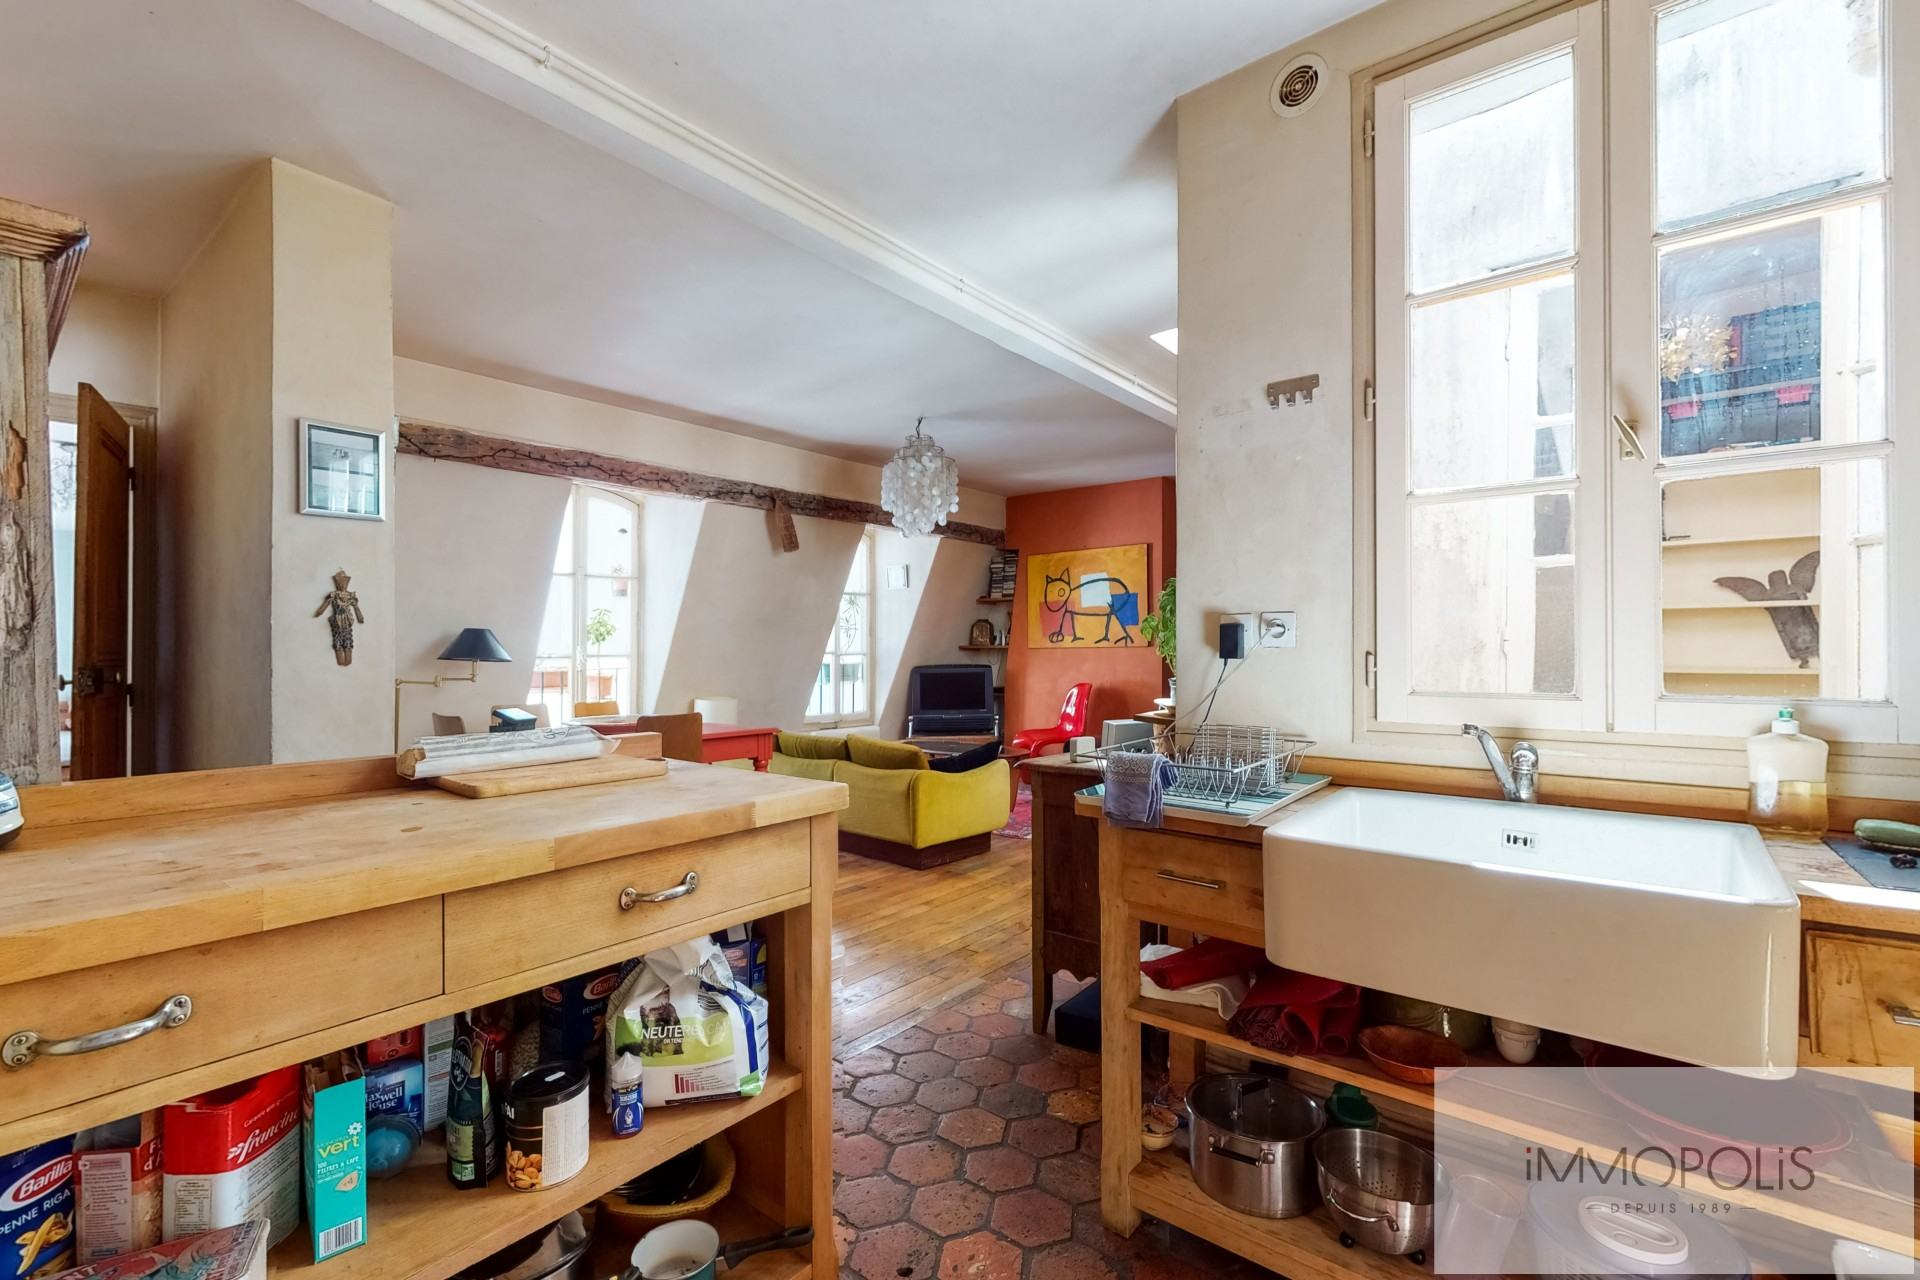 Appartement atypique, plein de charme, Rue Richard Lenoir – Paris XIème 3